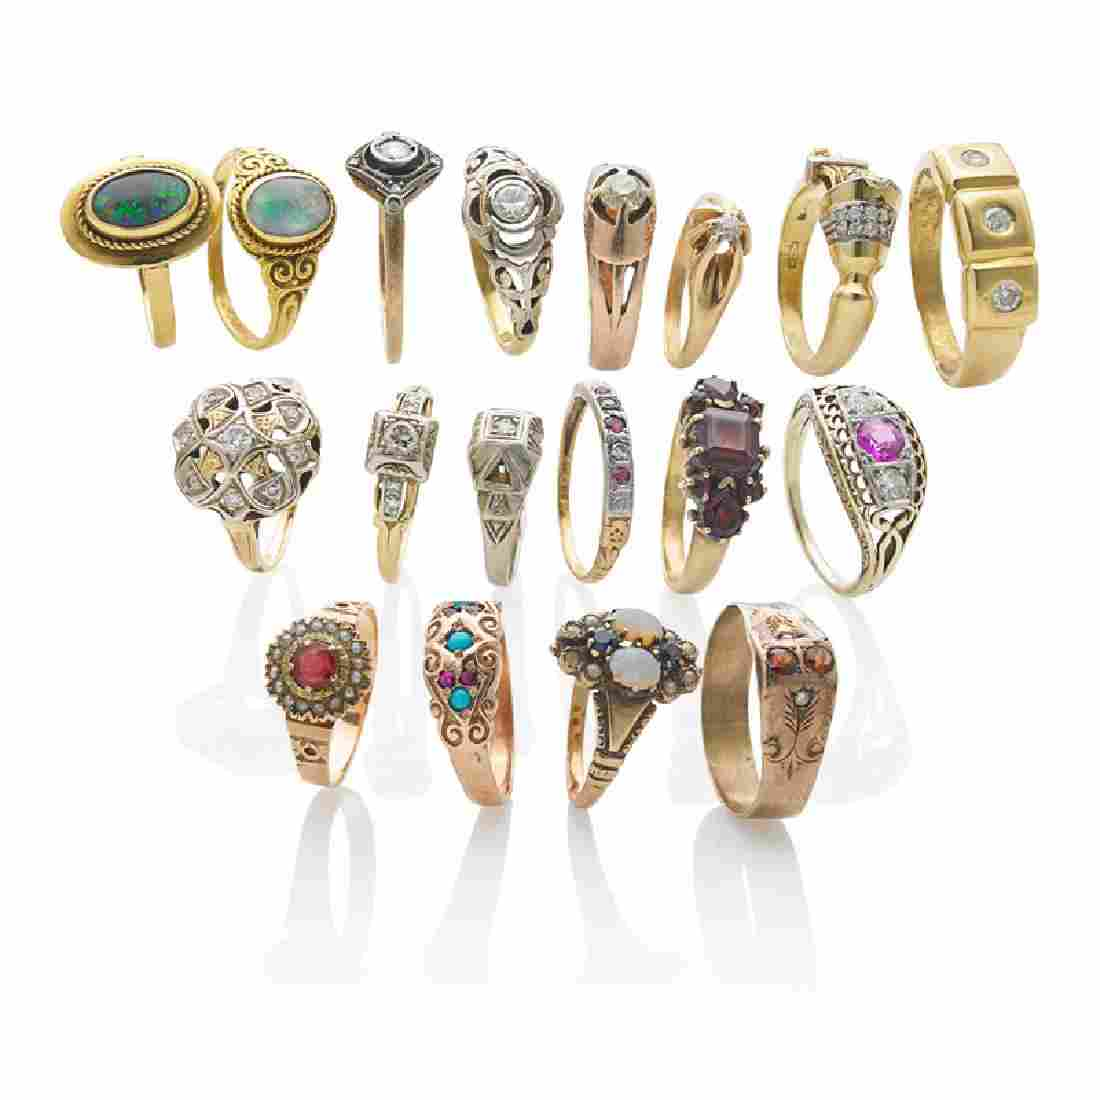 COLLECTION OF ANTIQUE DIAMOND OR GEM SET RINGS